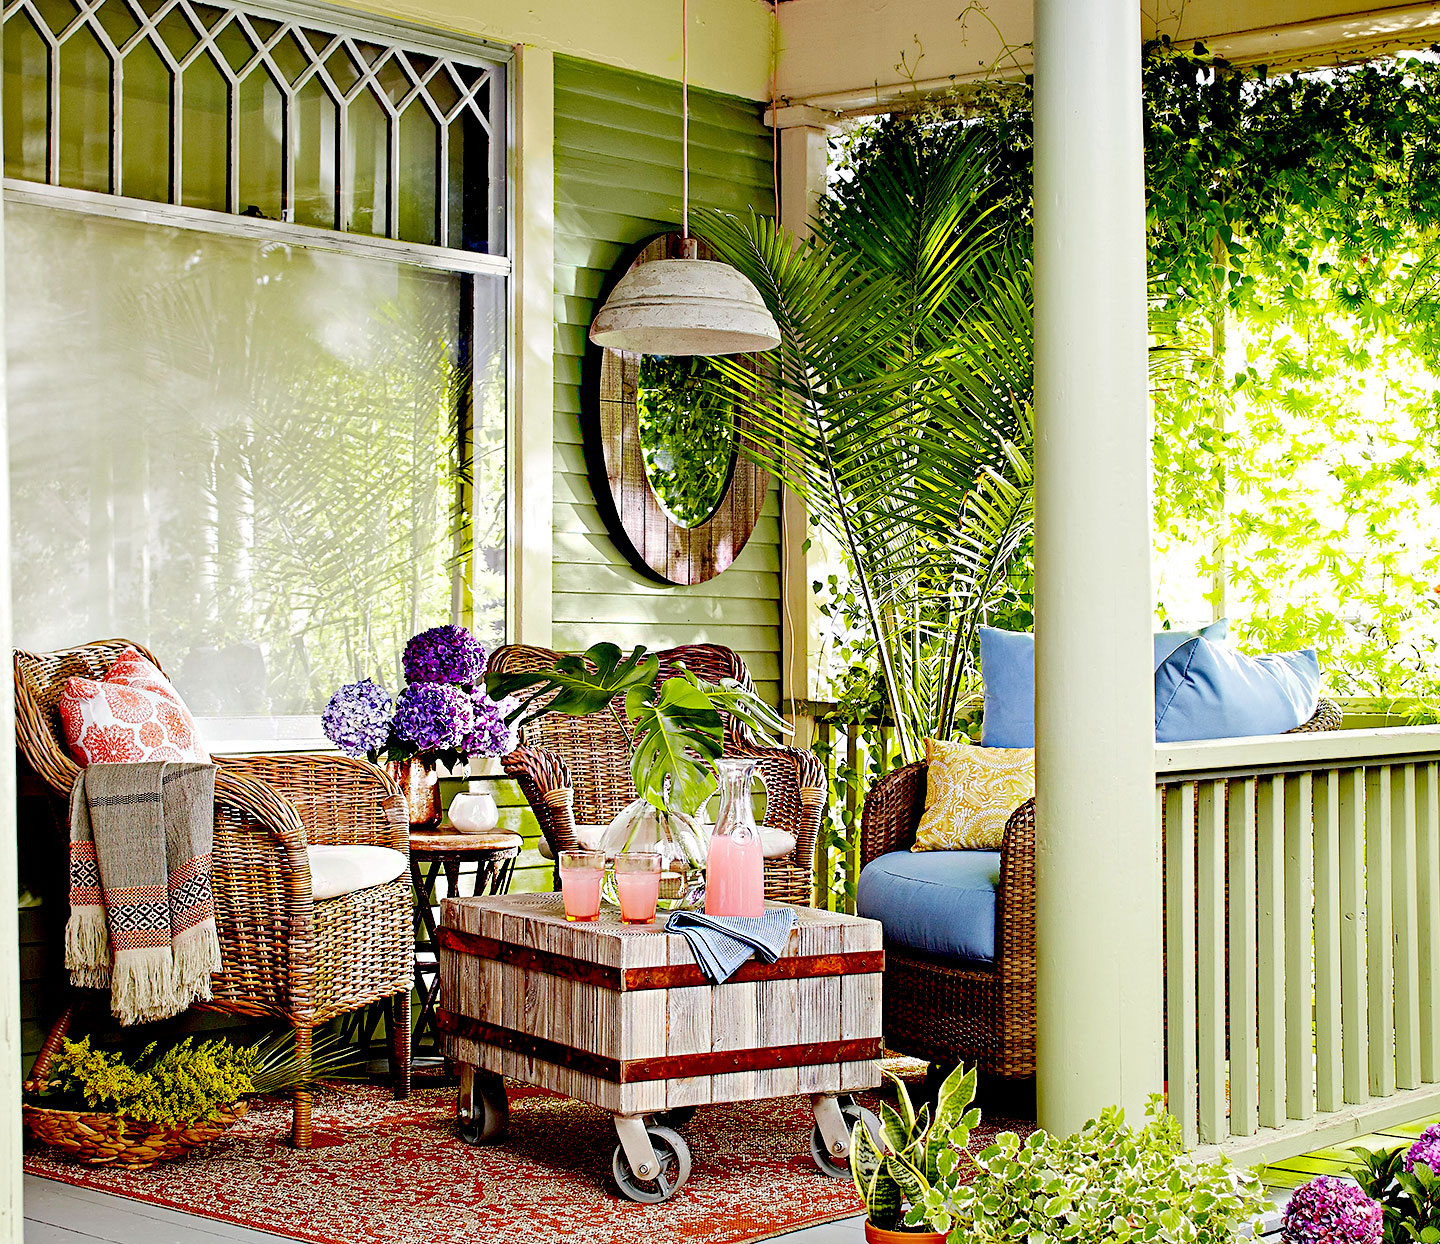 Porch with wicker furniture and rolling coffee table